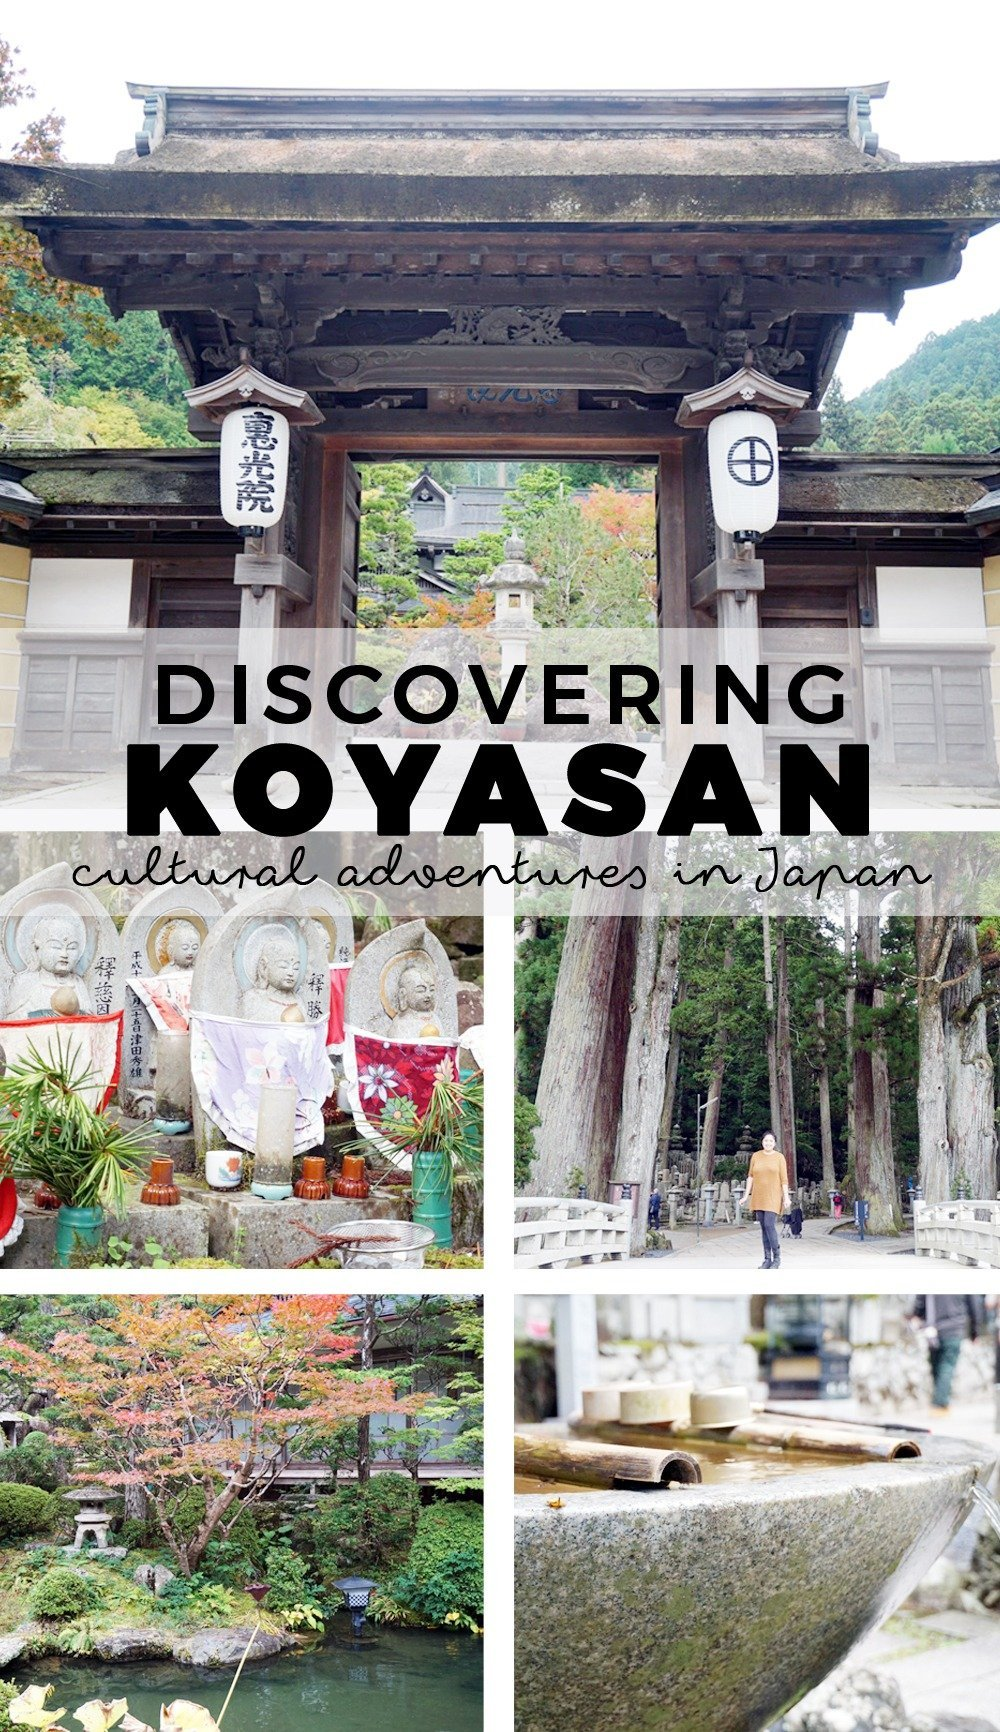 In recent years, Japan has become a top tourist destination. But here's one place you probably haven't heard of: Koyasan, a beautiful mountain complex where you'll meet monks, eat traditional food, and visit the dead.